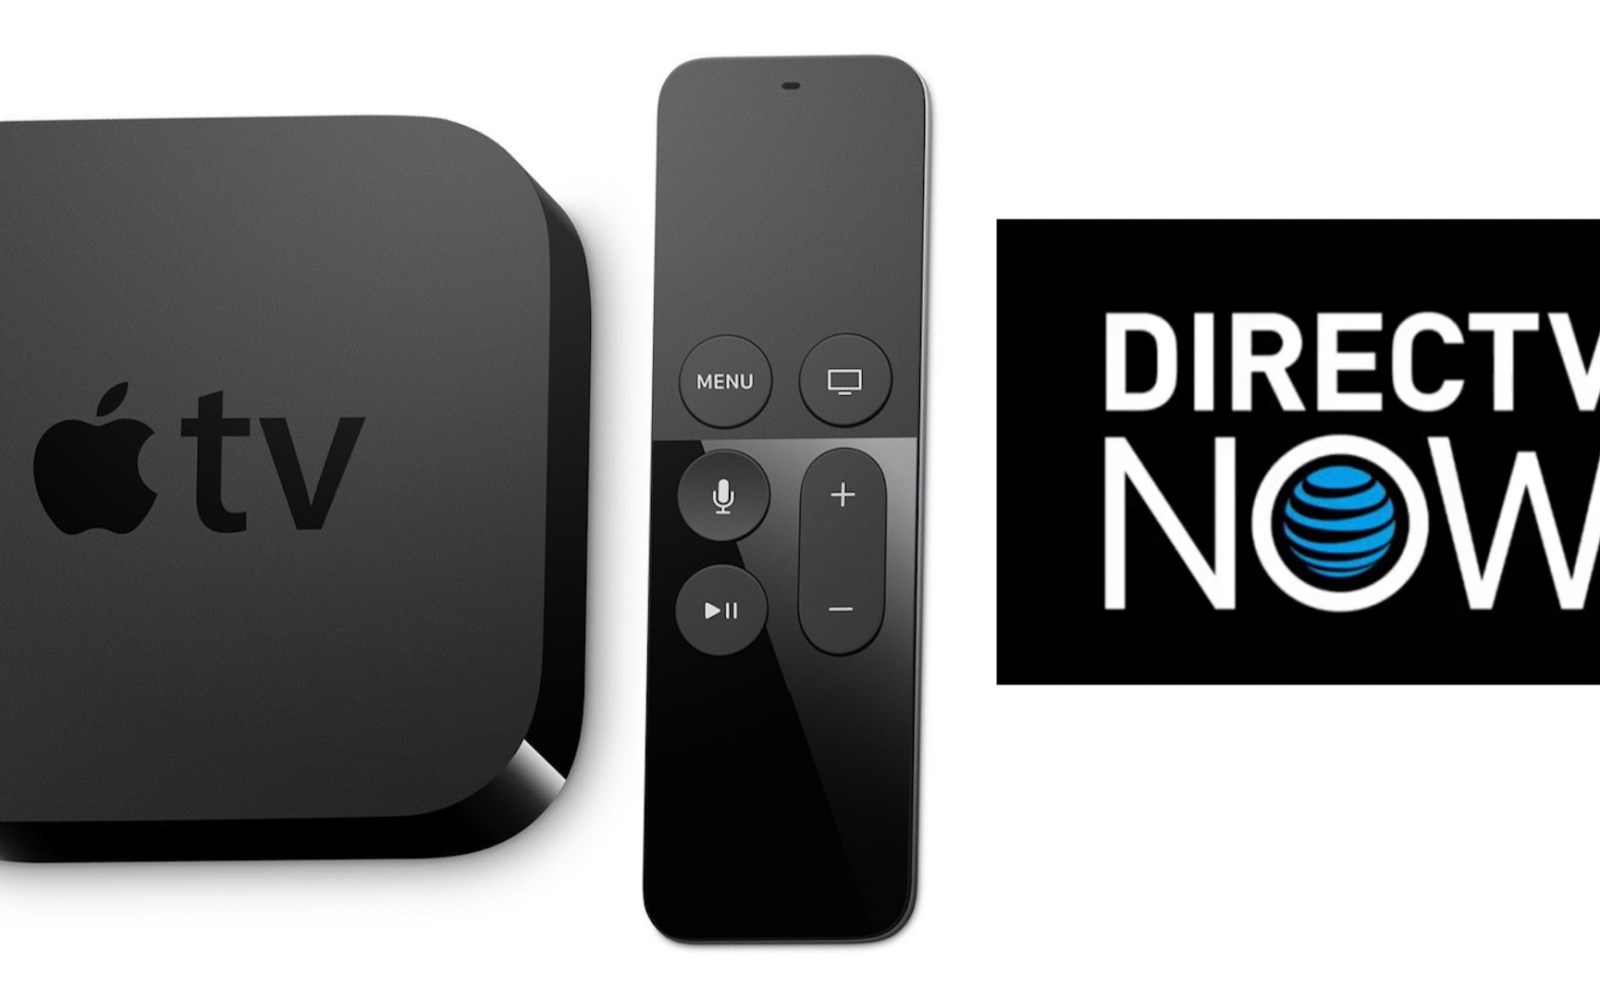 AT&T's DirecTV Now streaming TV service: launching November 30 from $35/month + free Apple TV offer